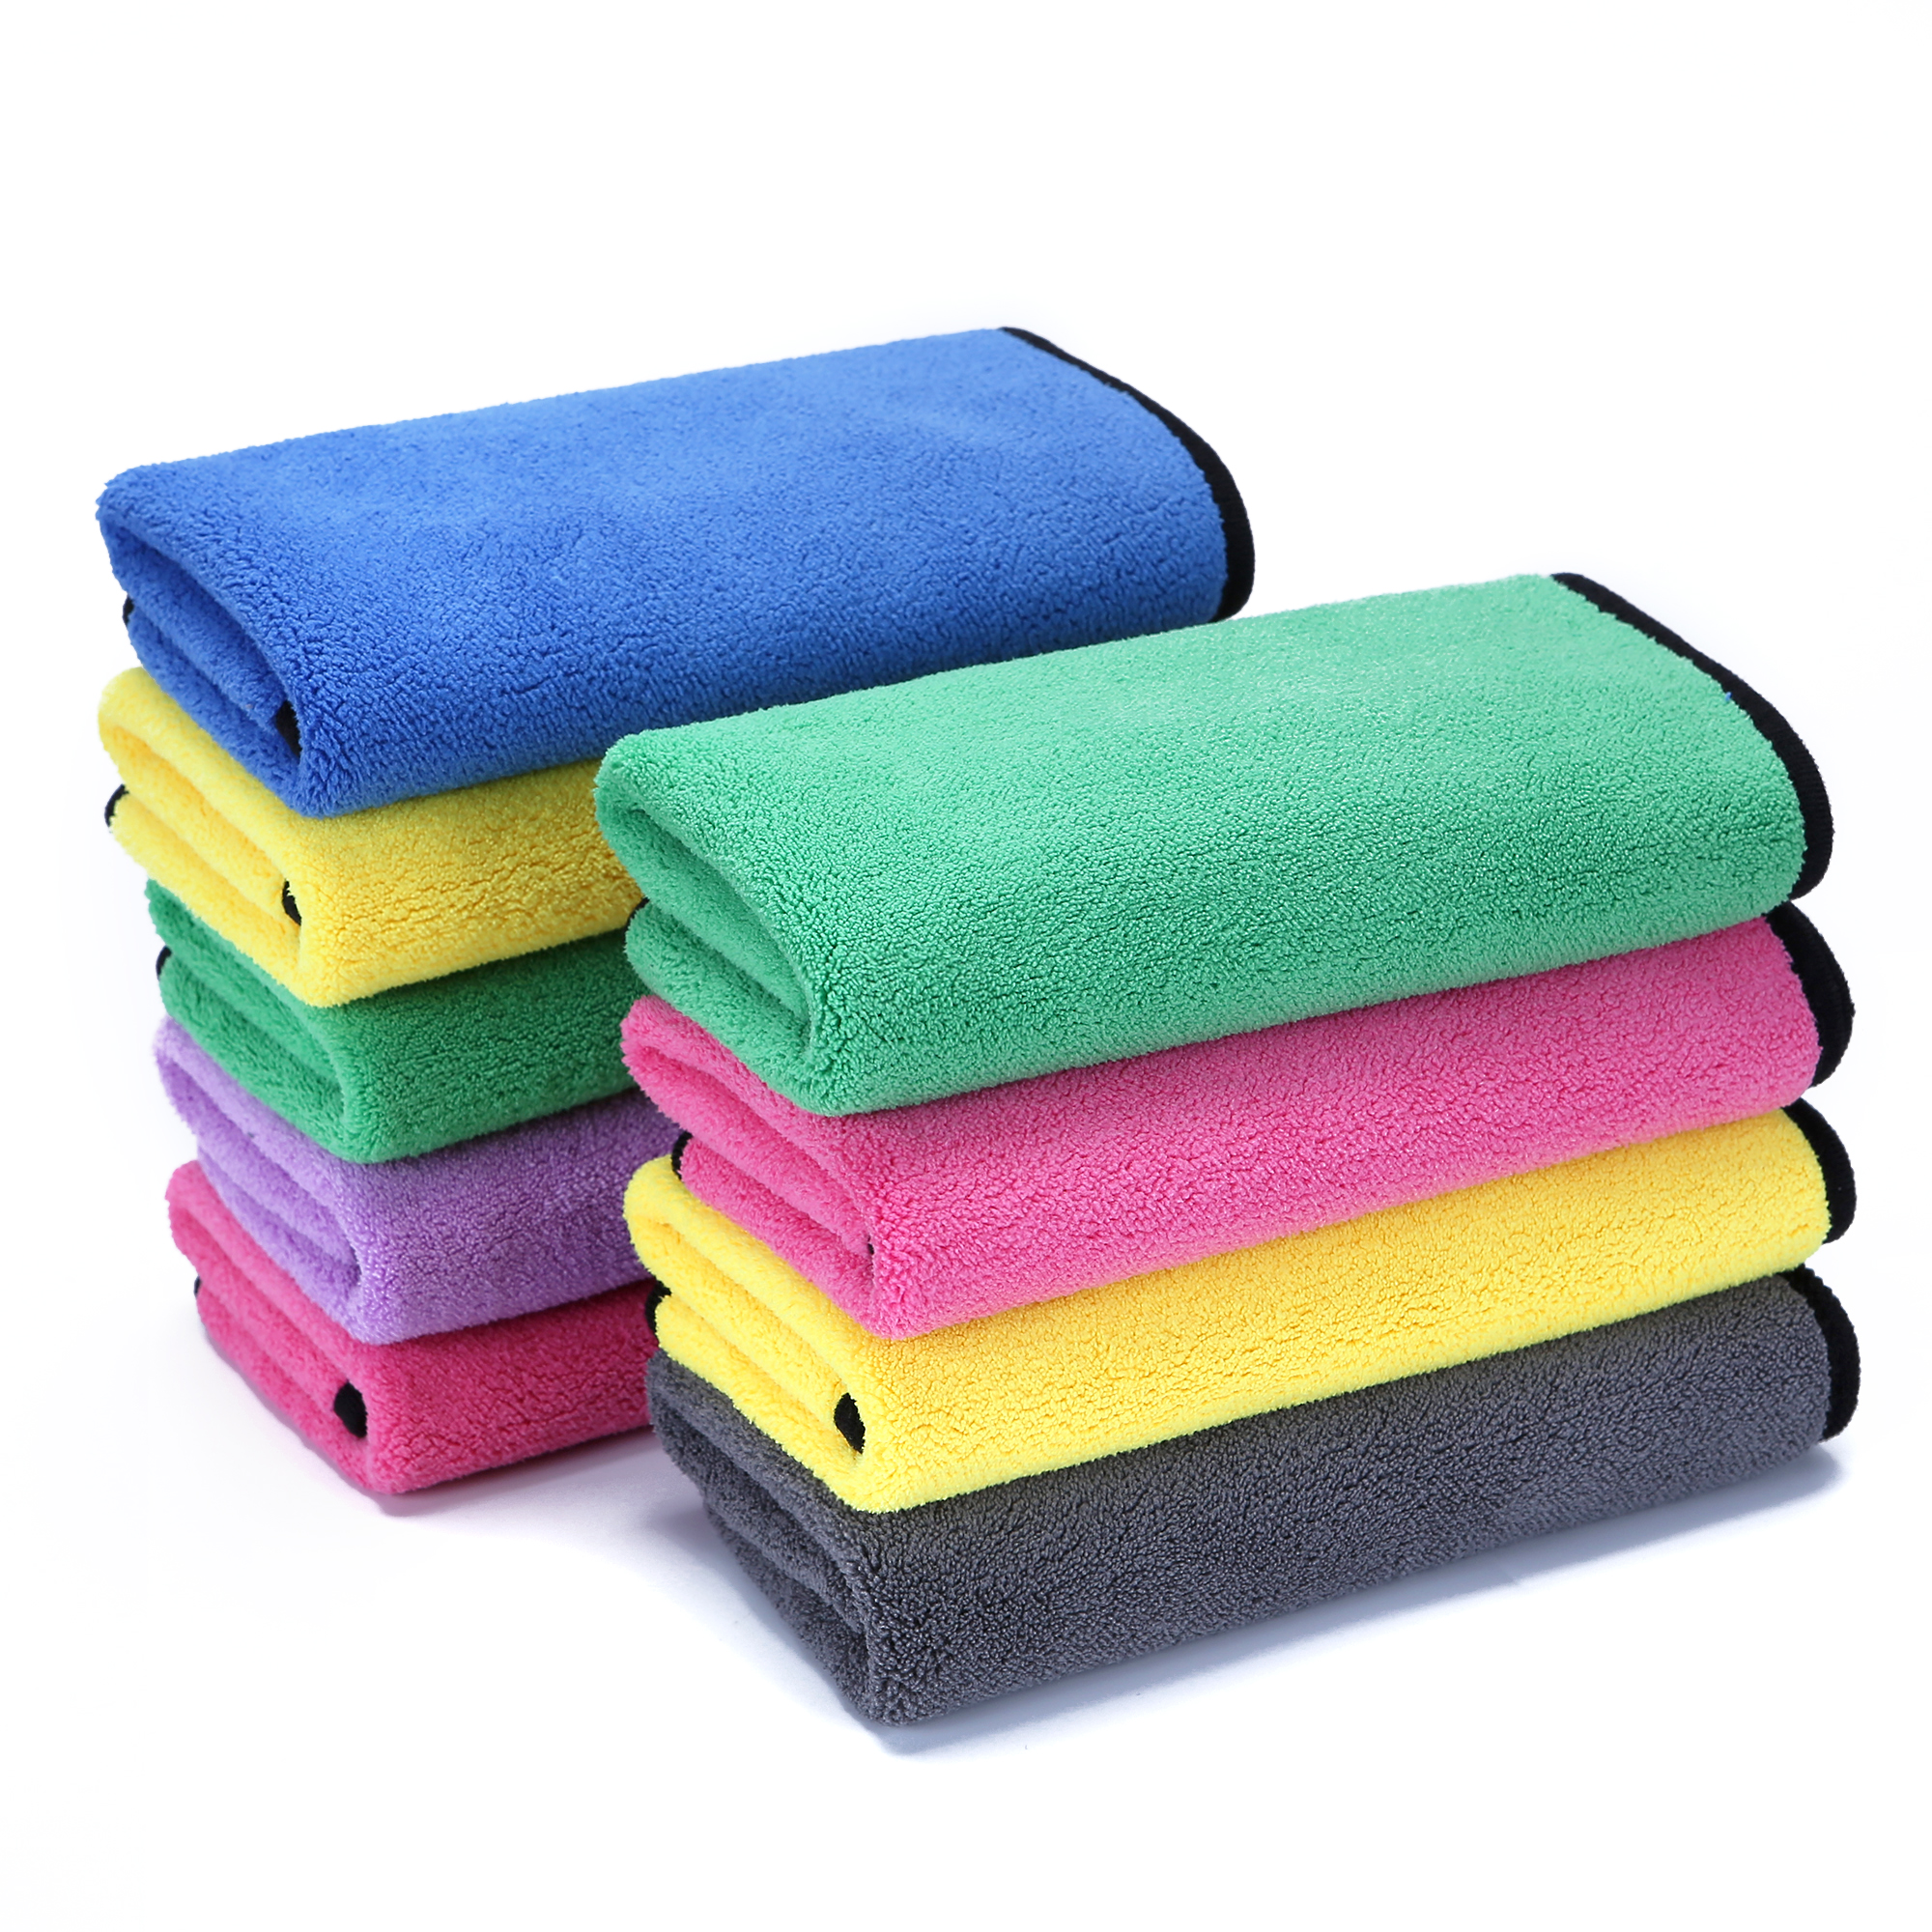 Tuto Tapis D Éveil Nomade best top absorbeurs list and get free shipping - 6h3f77me